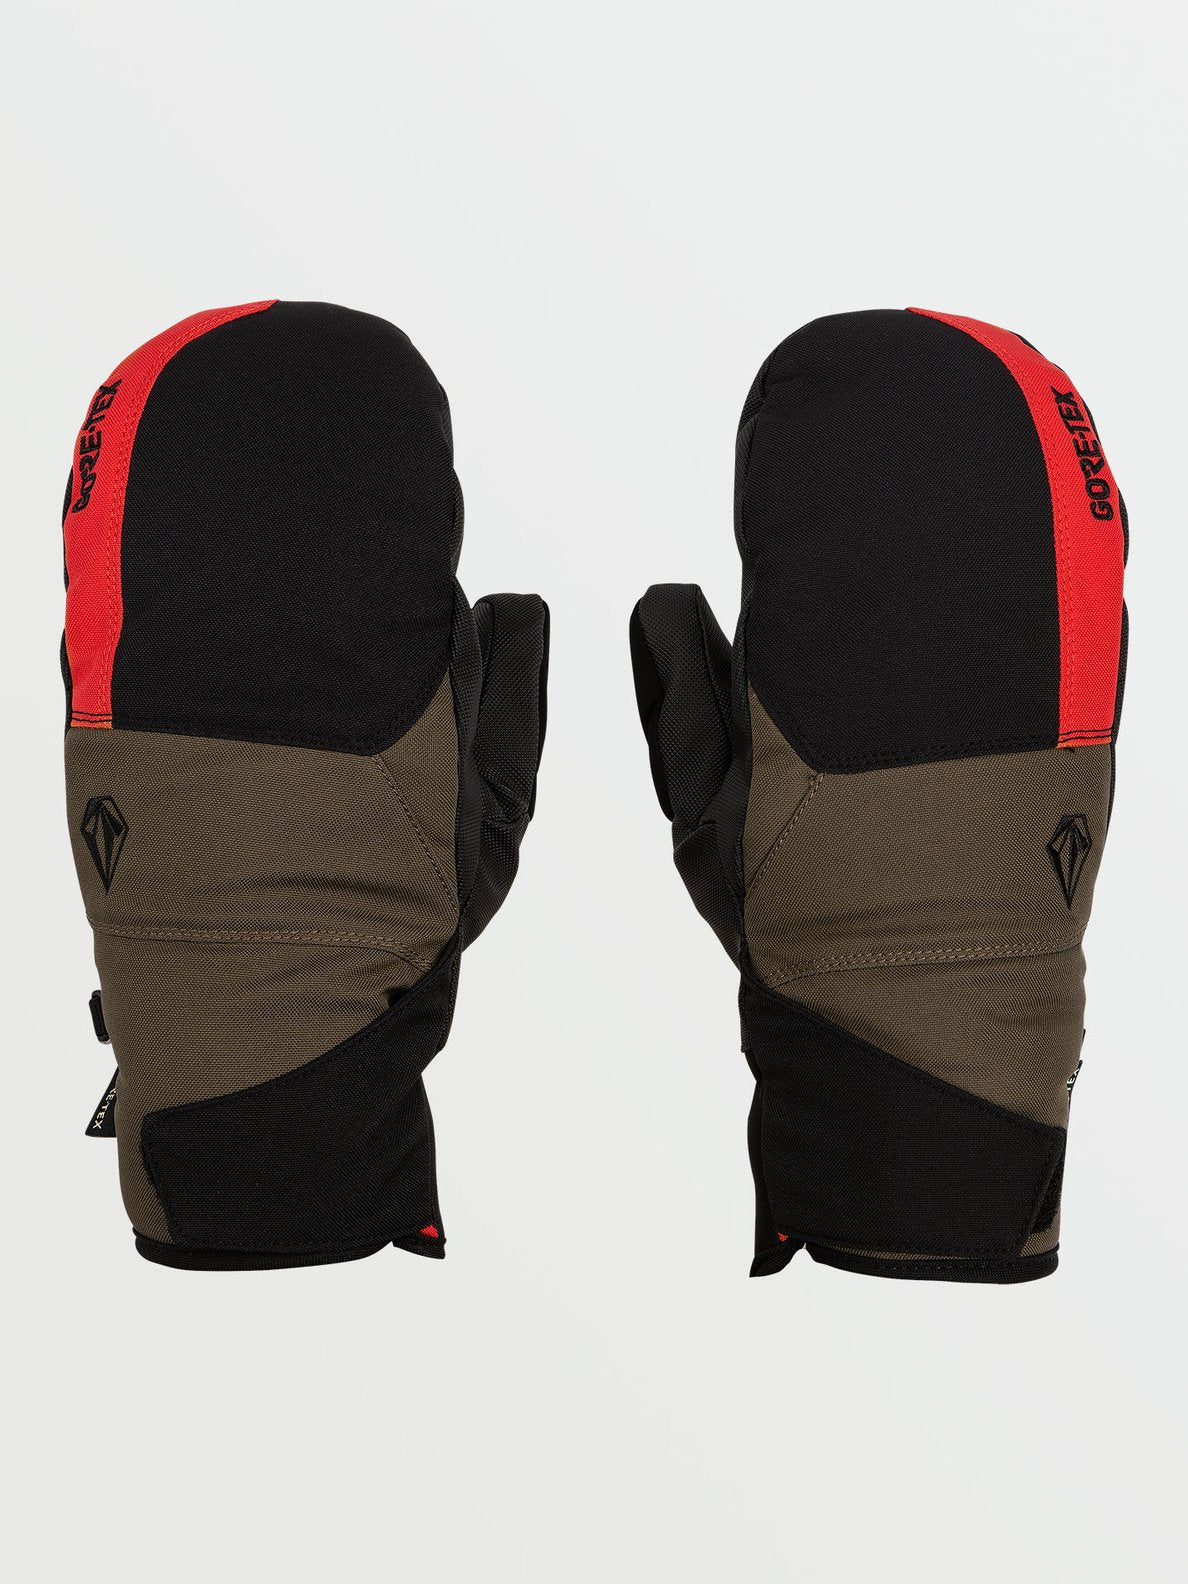 Mens Stay Dry GORE-TEX Mitt - Red